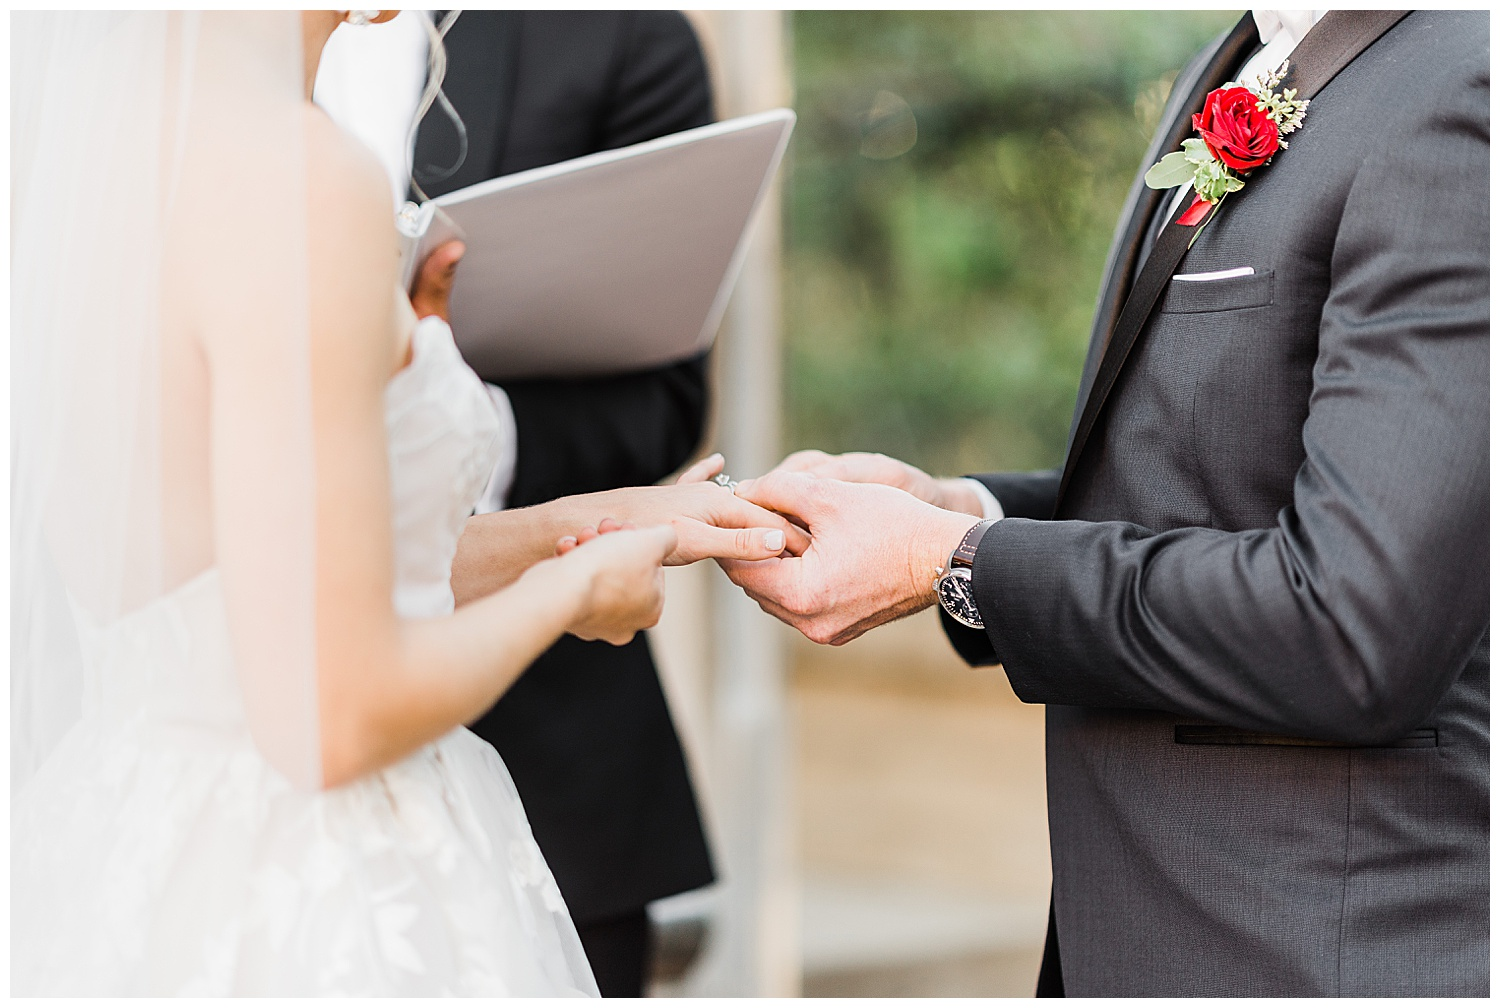 bride-and-groom-ring-ceremony-cate-batchelor-photography.jpg